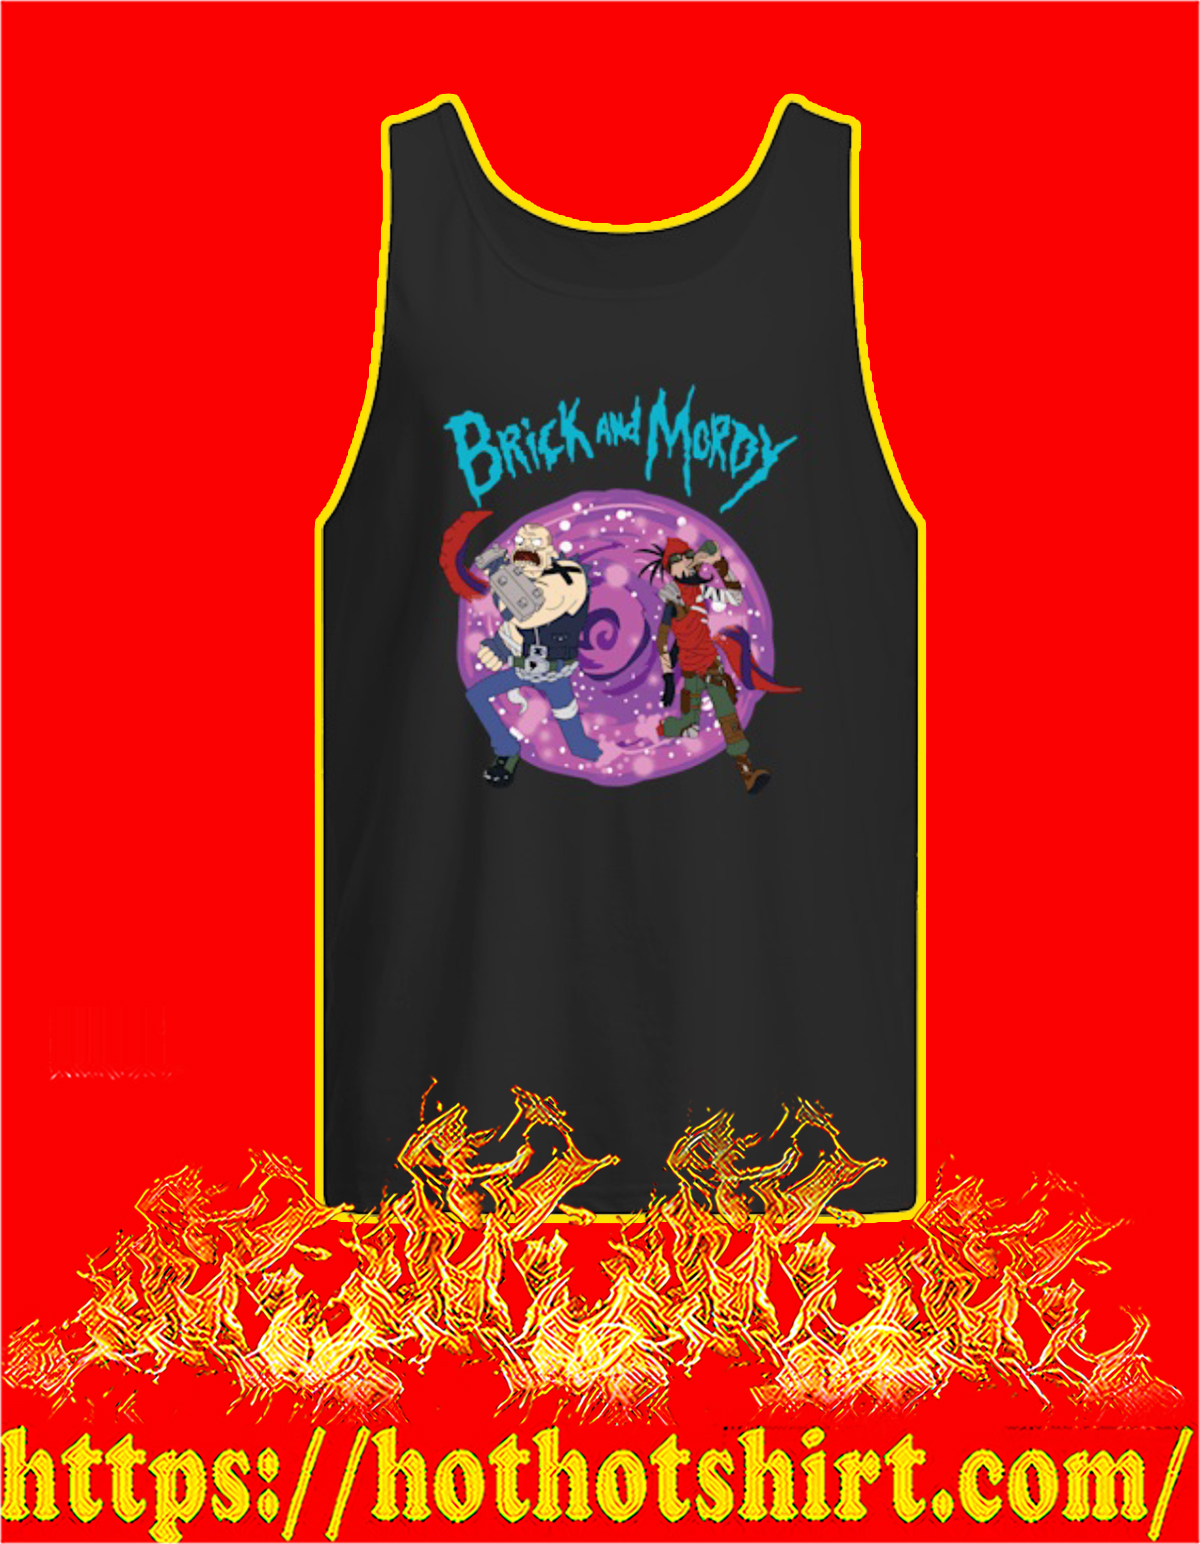 Brick and mordy tank top